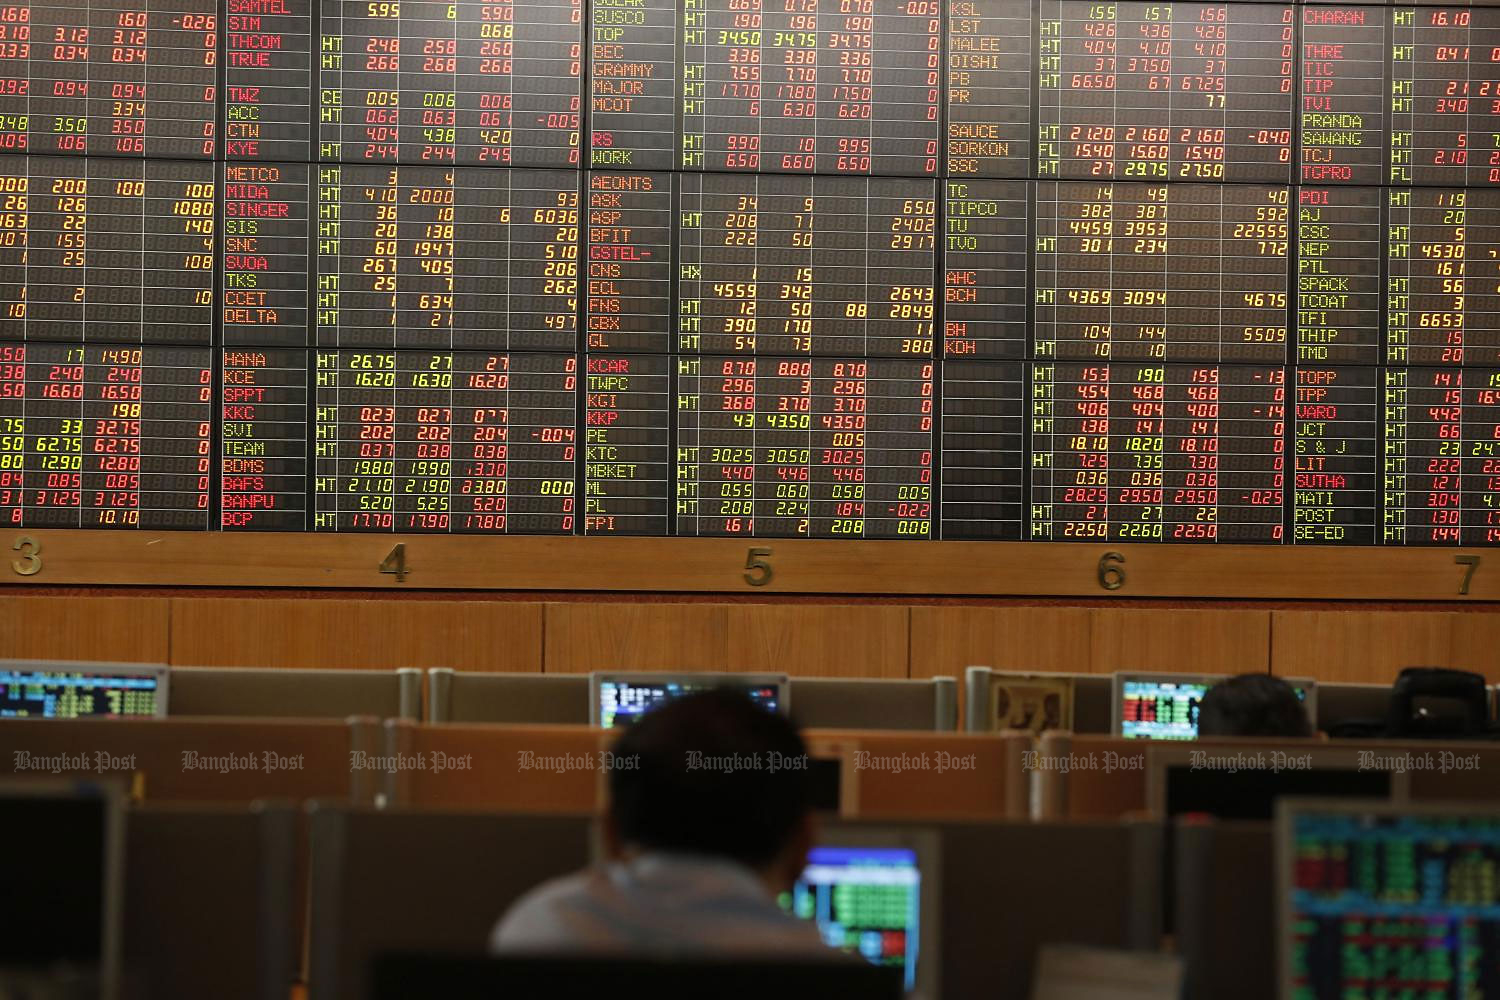 An investor looks at an electronic display of stock indices at Asia Plus Securities. (Photo by Pornprom Satrabhaya)